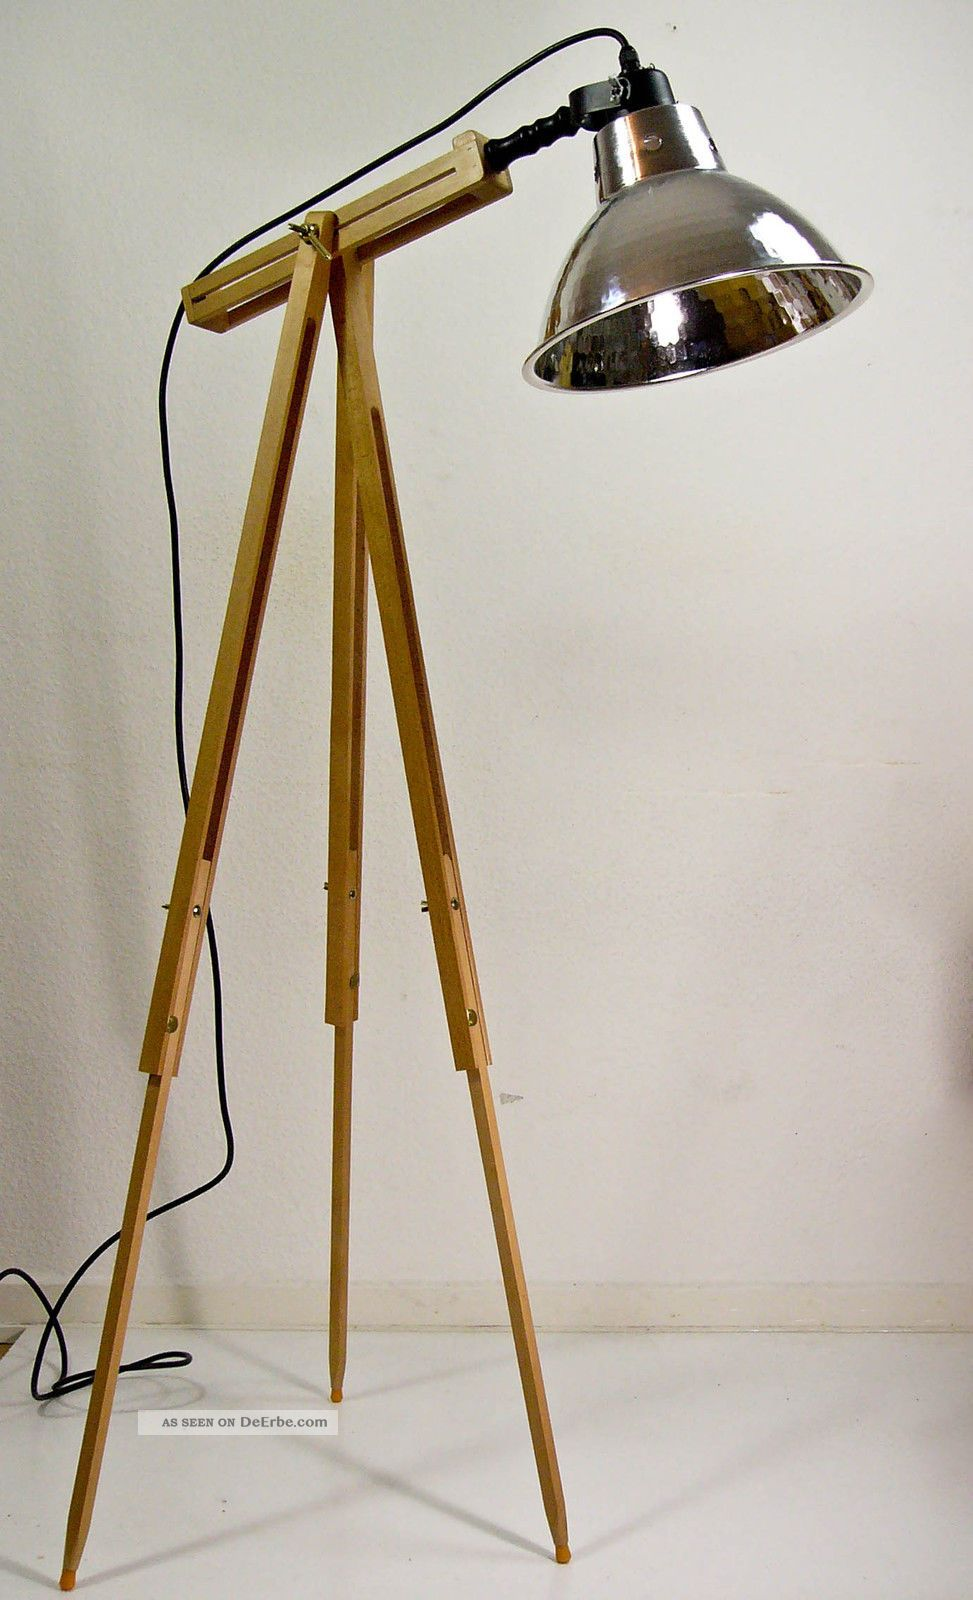 dreibein stehlampe scheinwerfer tripod holz stativ lampe vintage stil 70 er. Black Bedroom Furniture Sets. Home Design Ideas